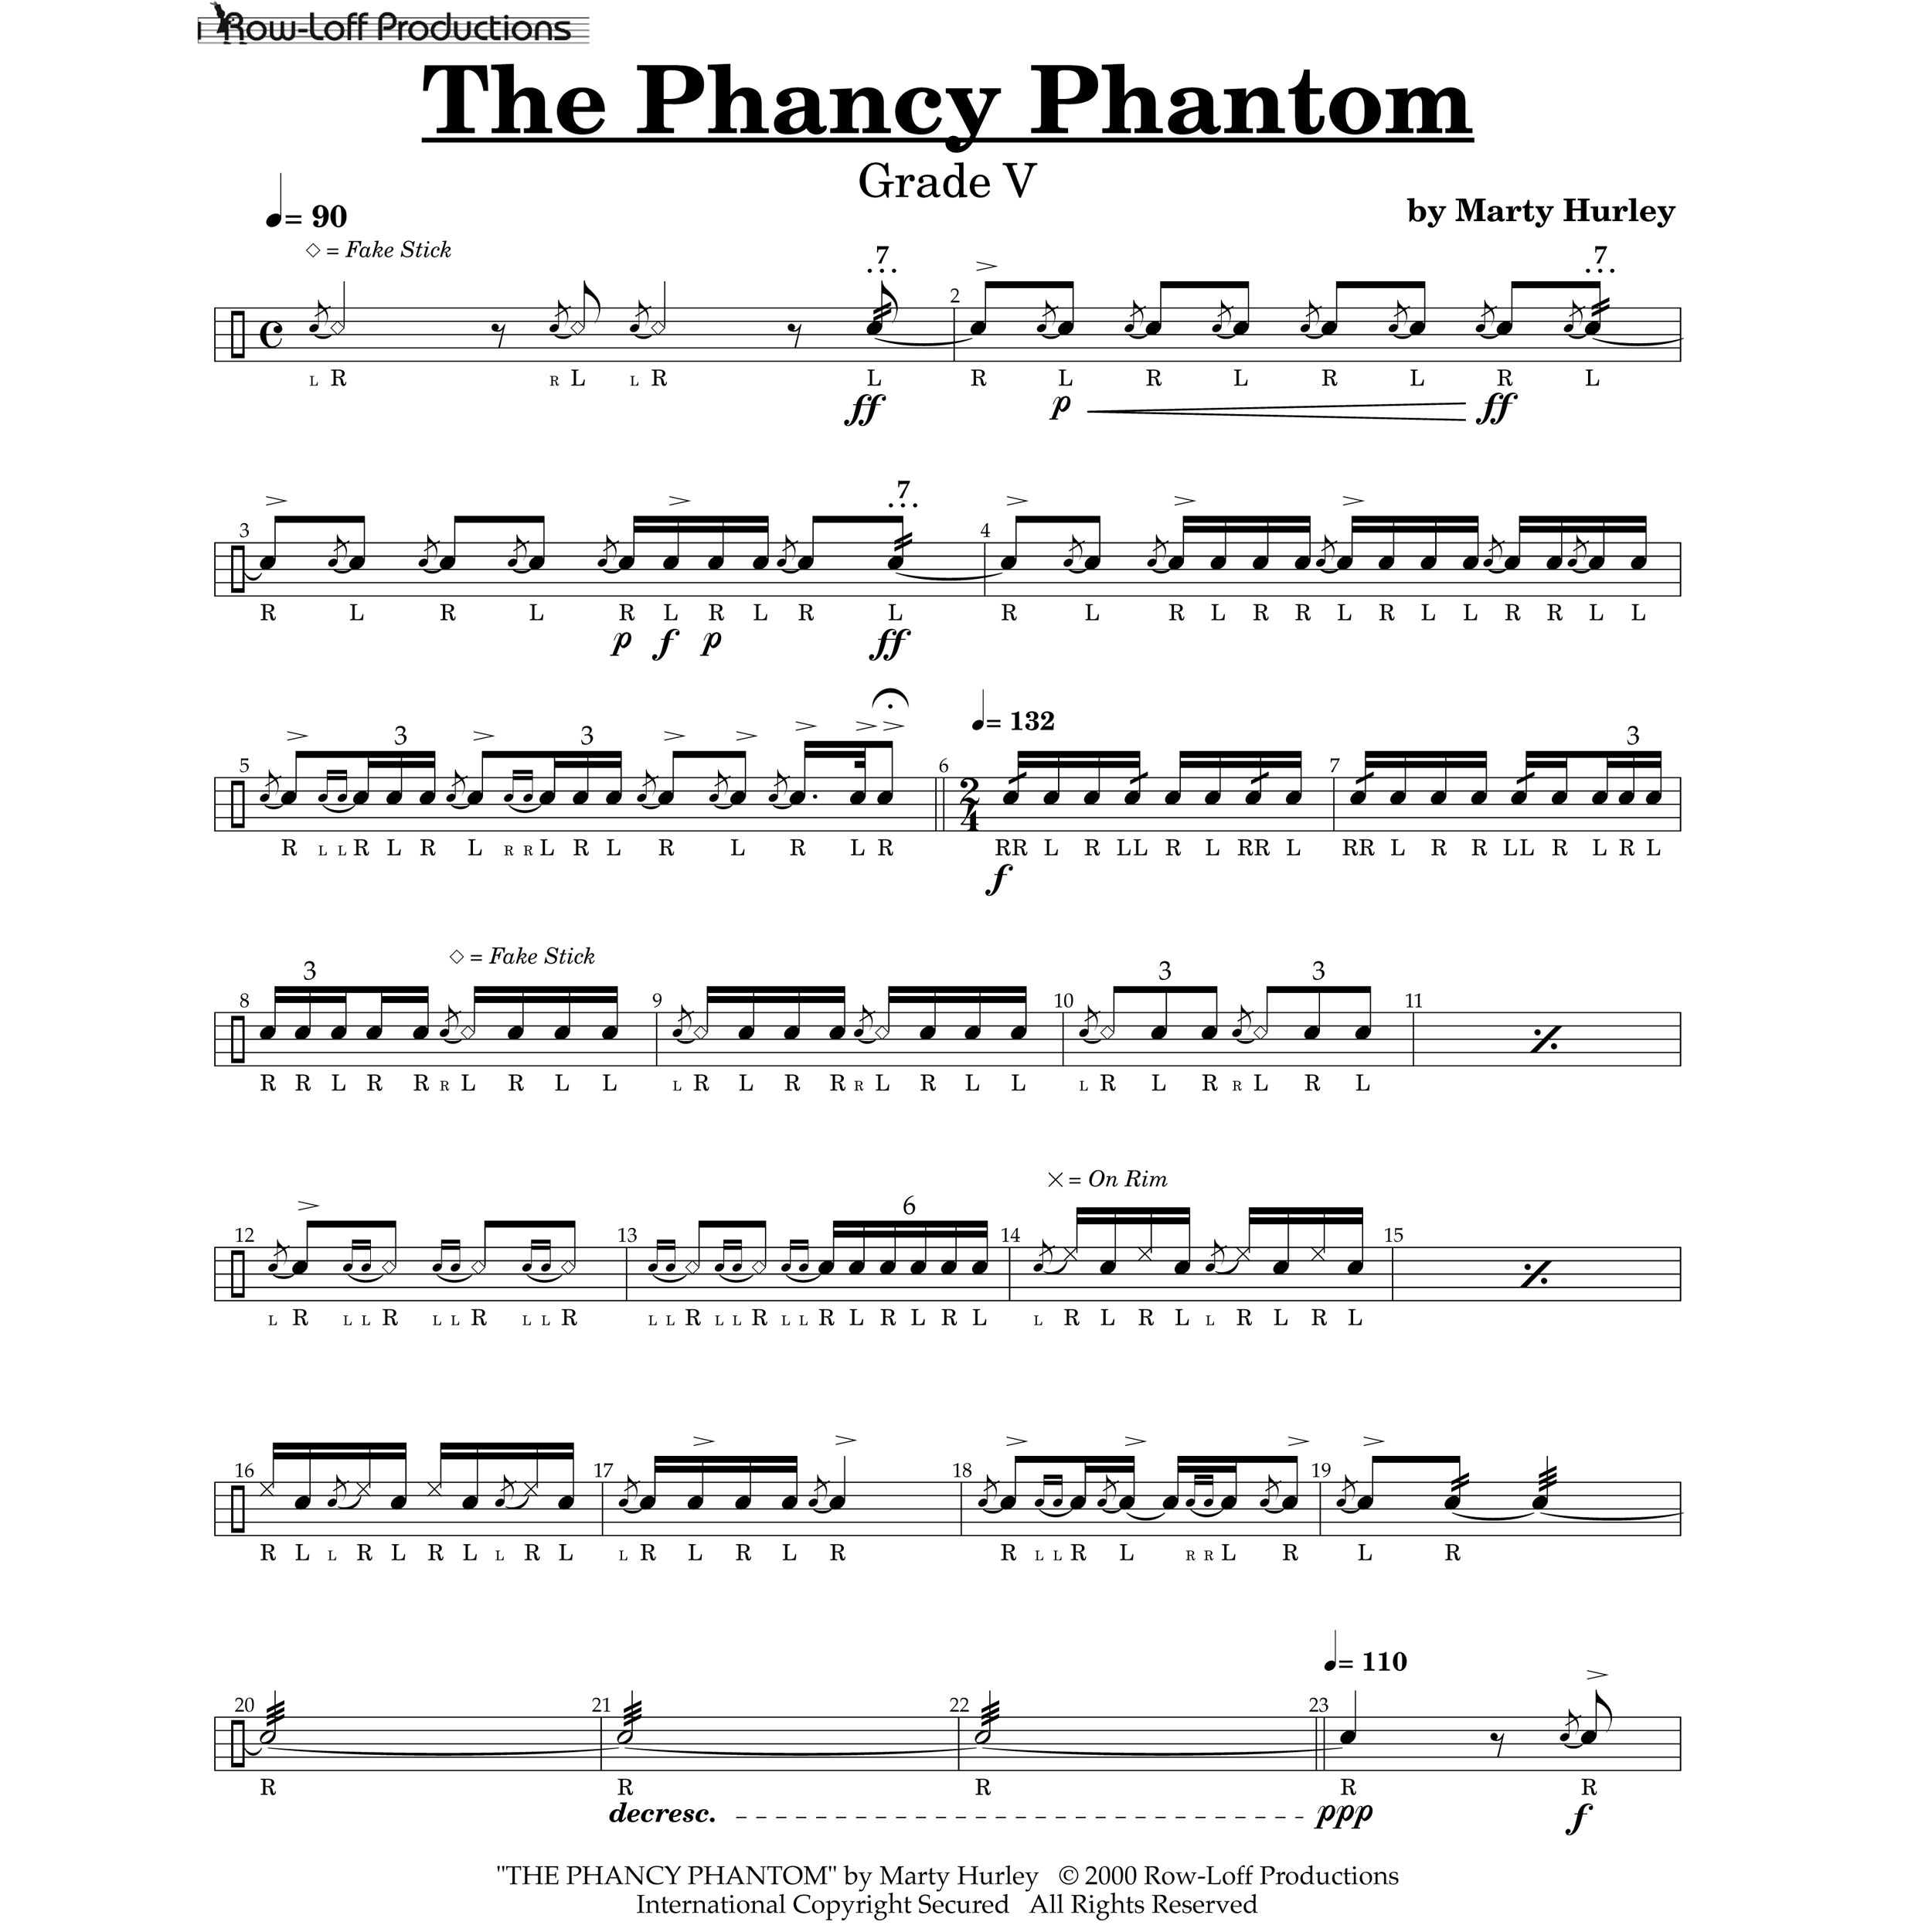 The Phancy Phantom by Marty Hurley